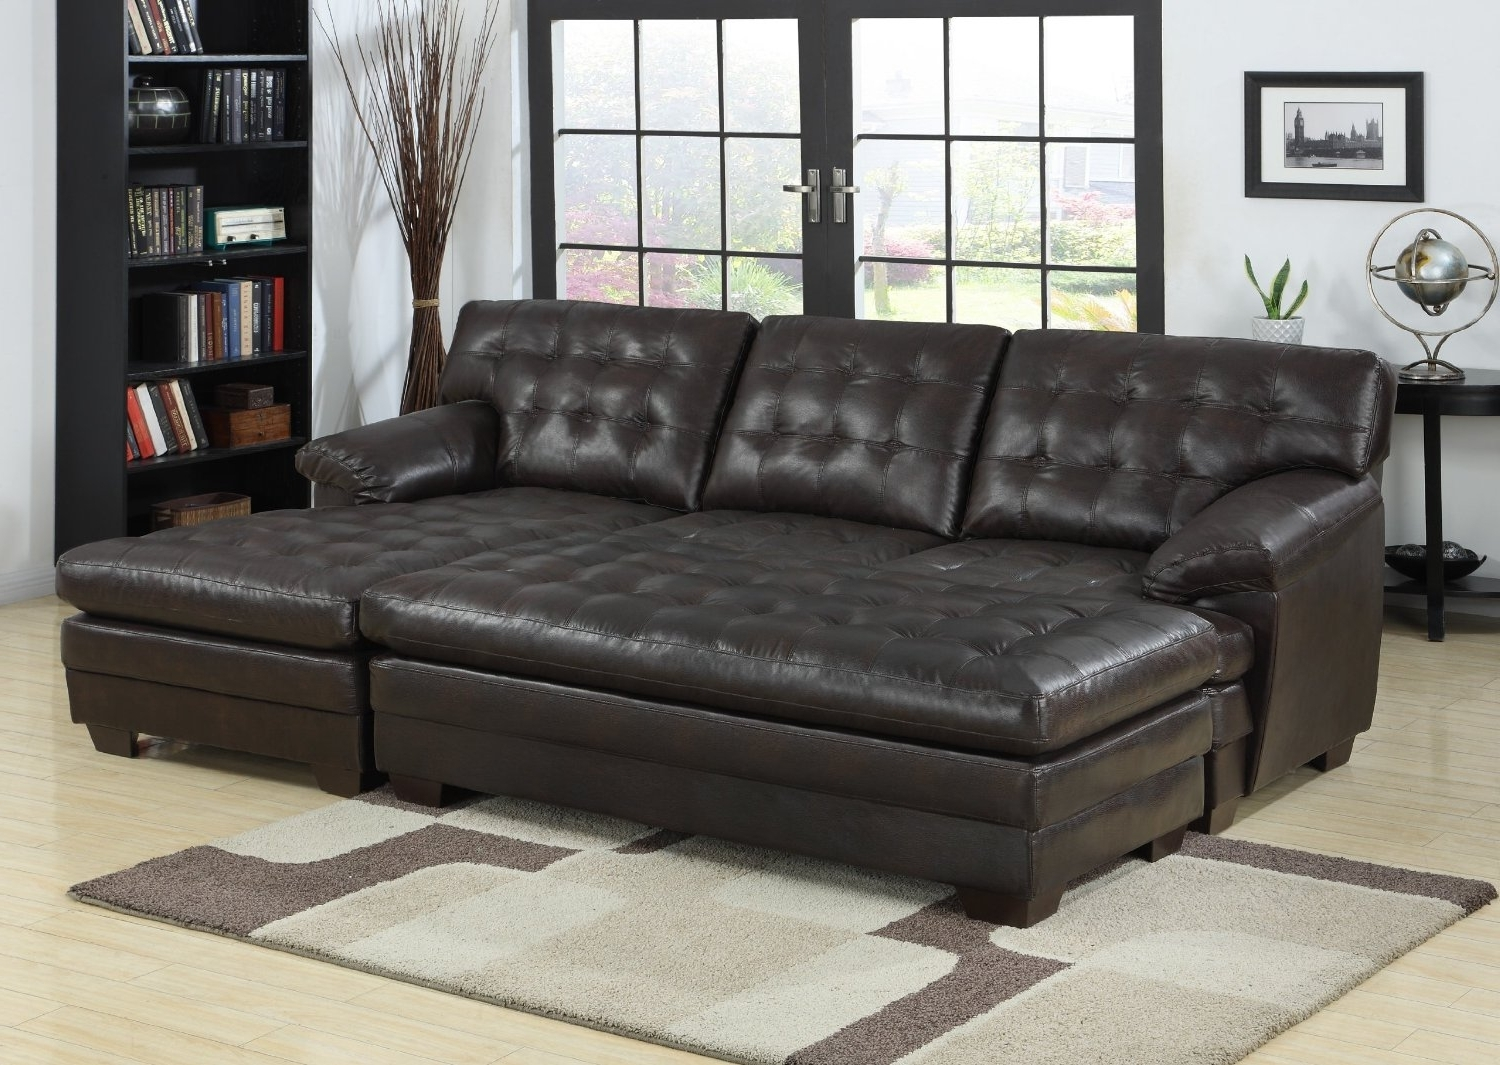 Double Chaise Lounge Sofa Image Gallery — The Home Redesign : The With Regard To 2017 Double Chaise Lounges For Living Room (View 4 of 15)